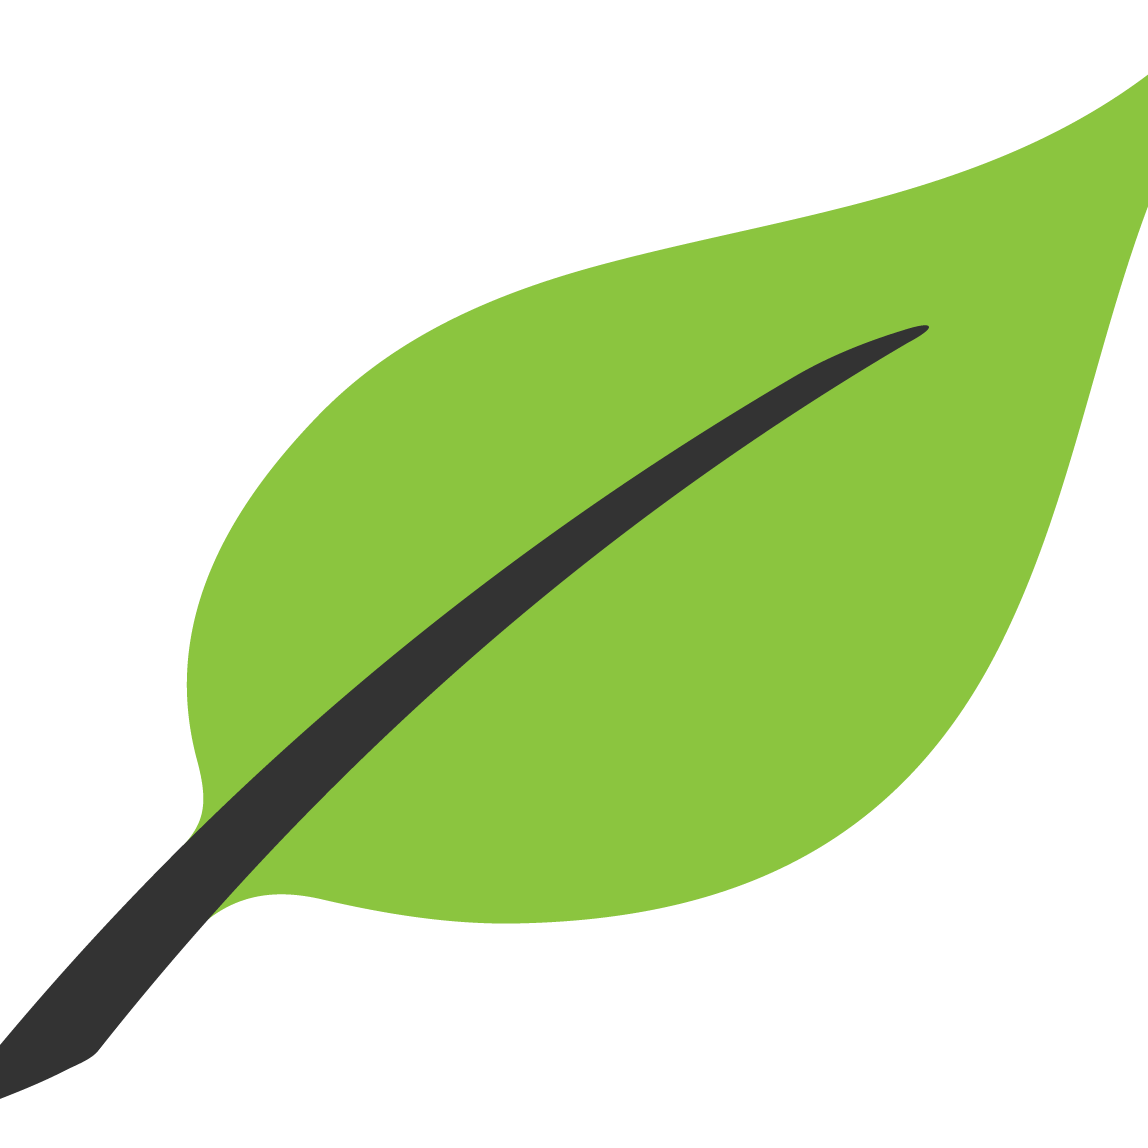 https://www.peace-eagan.org/wp-content/uploads/2021/02/cropped-Copy-of-Leaf.png